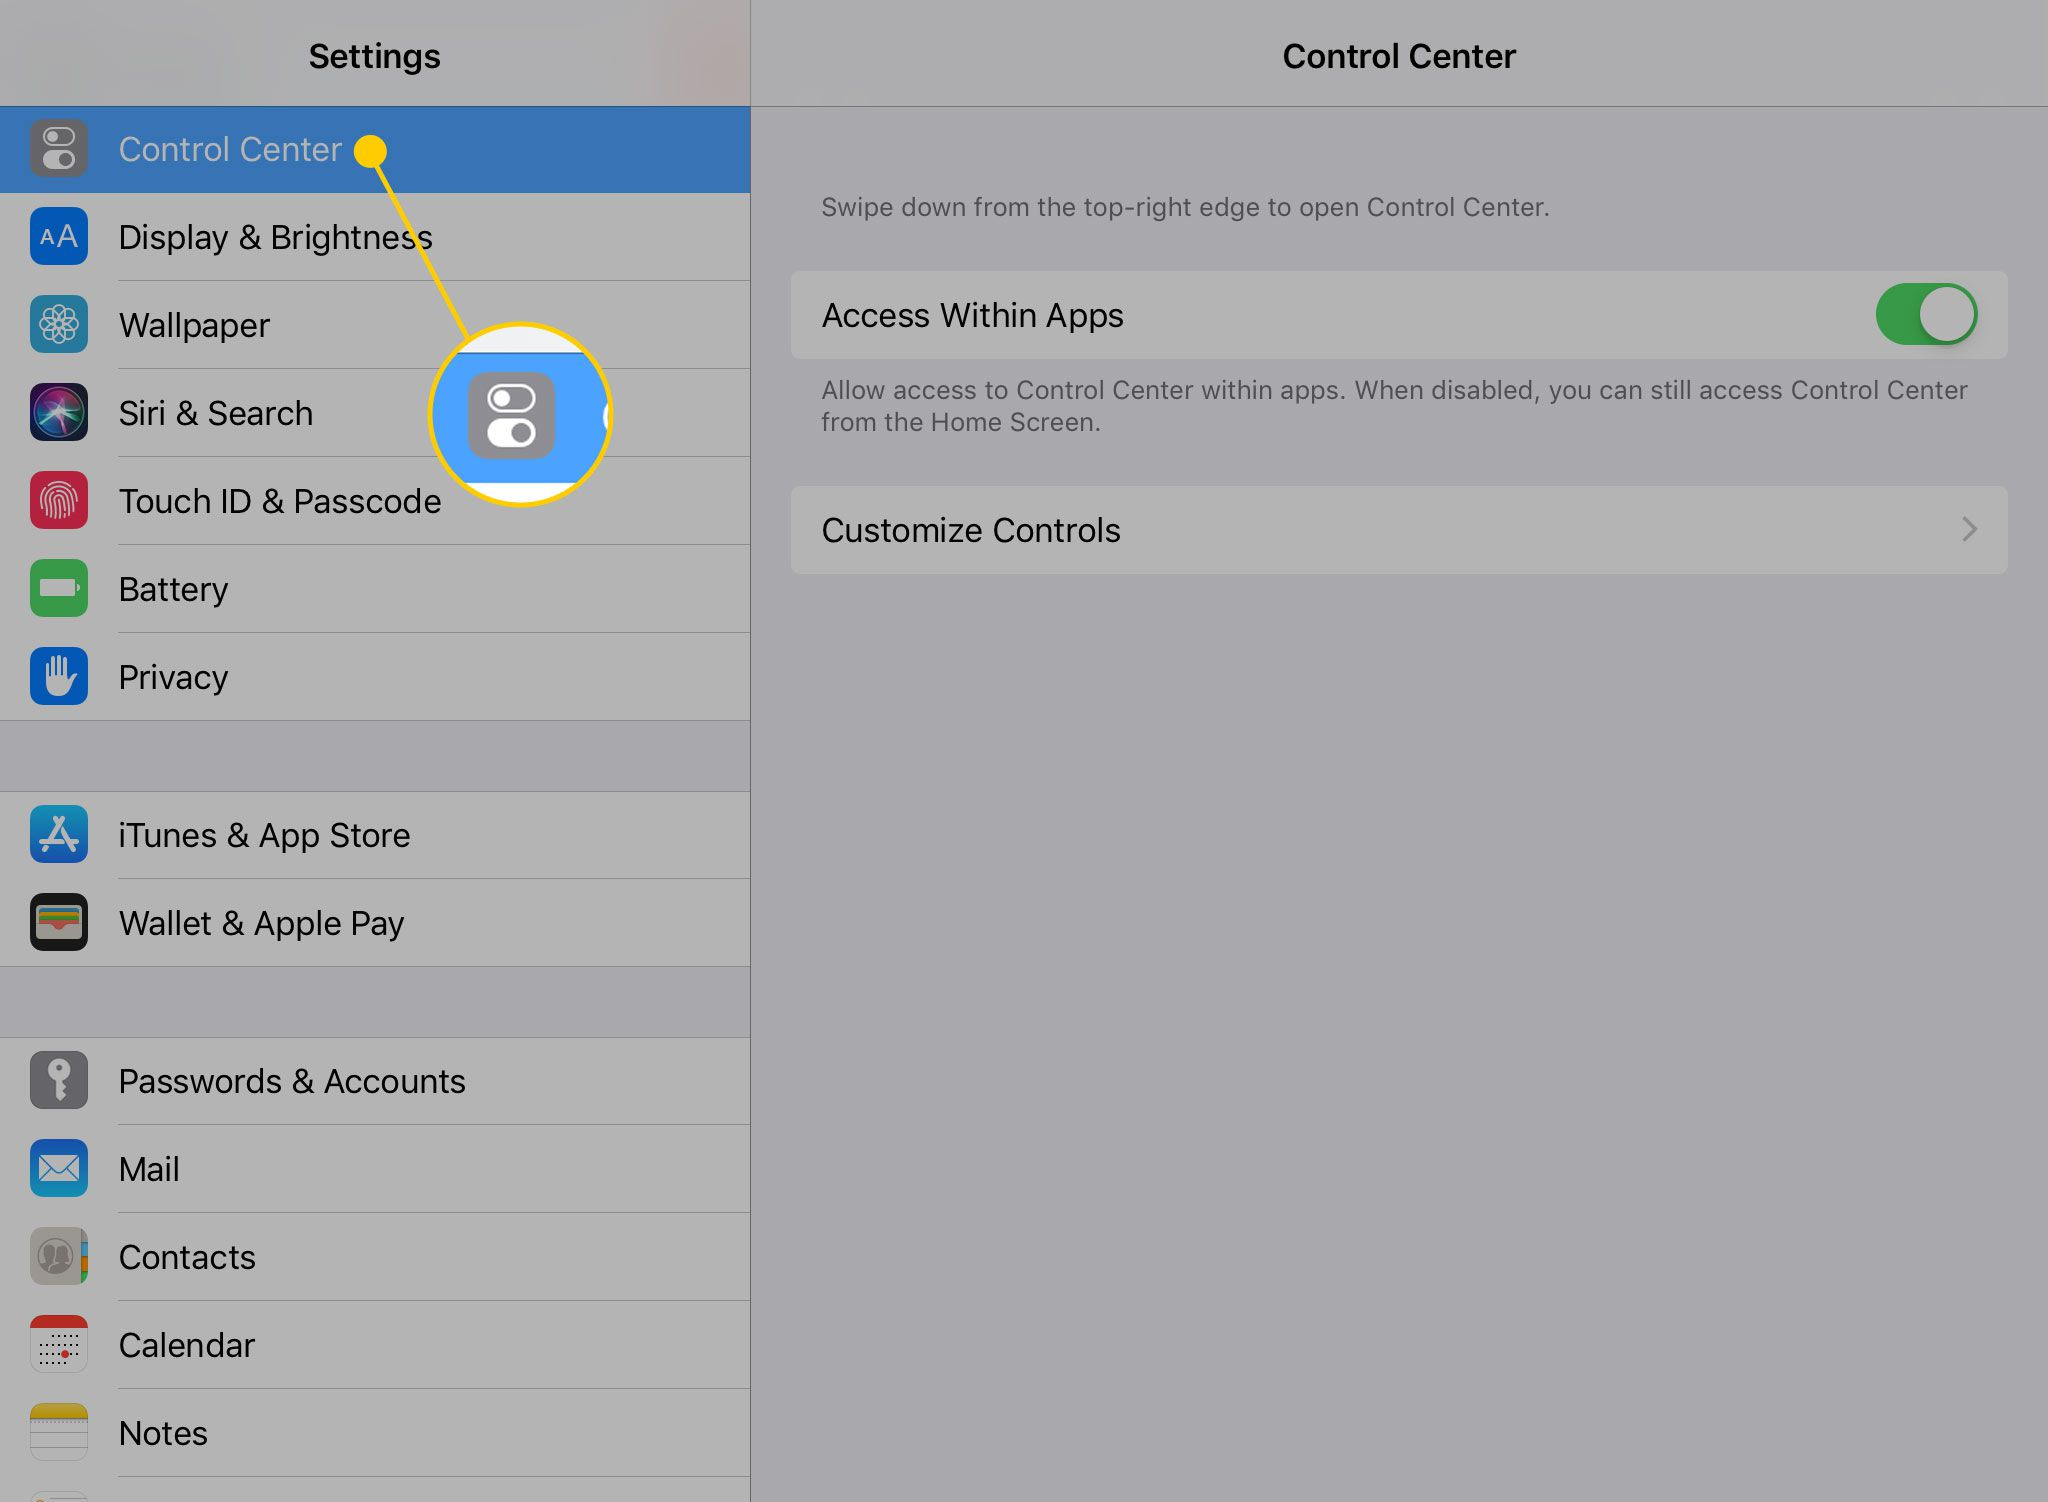 iPad Settings with the Control Center heading highlighted